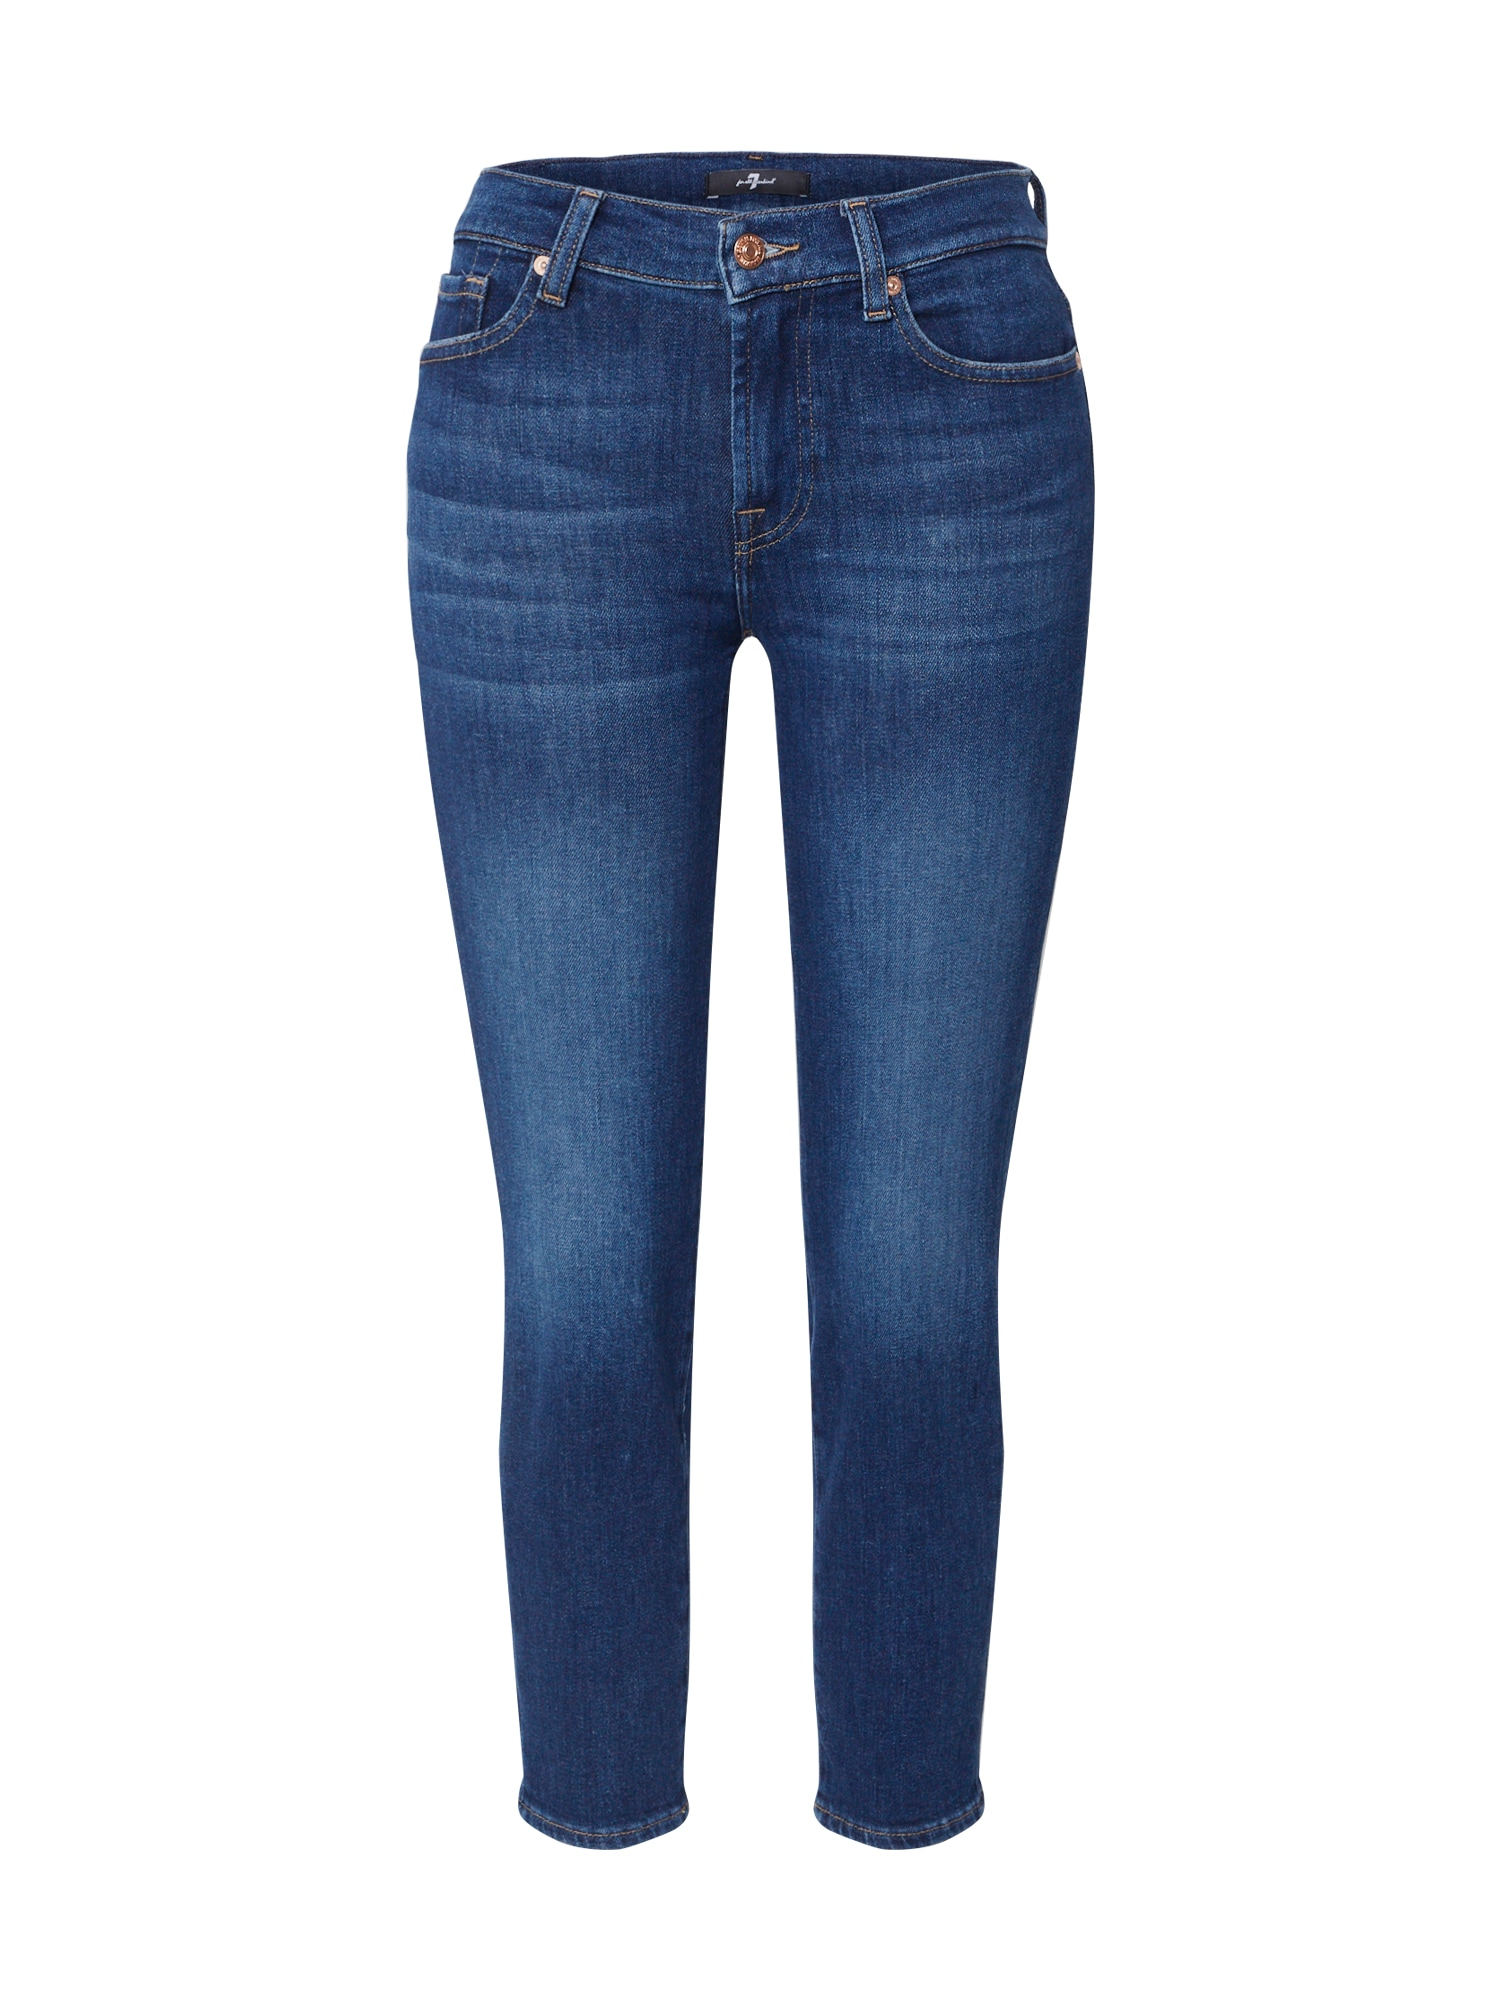 7 for all mankind Džinsai 'ROXANNE ANKLE' tamsiai (džinso) mėlyna